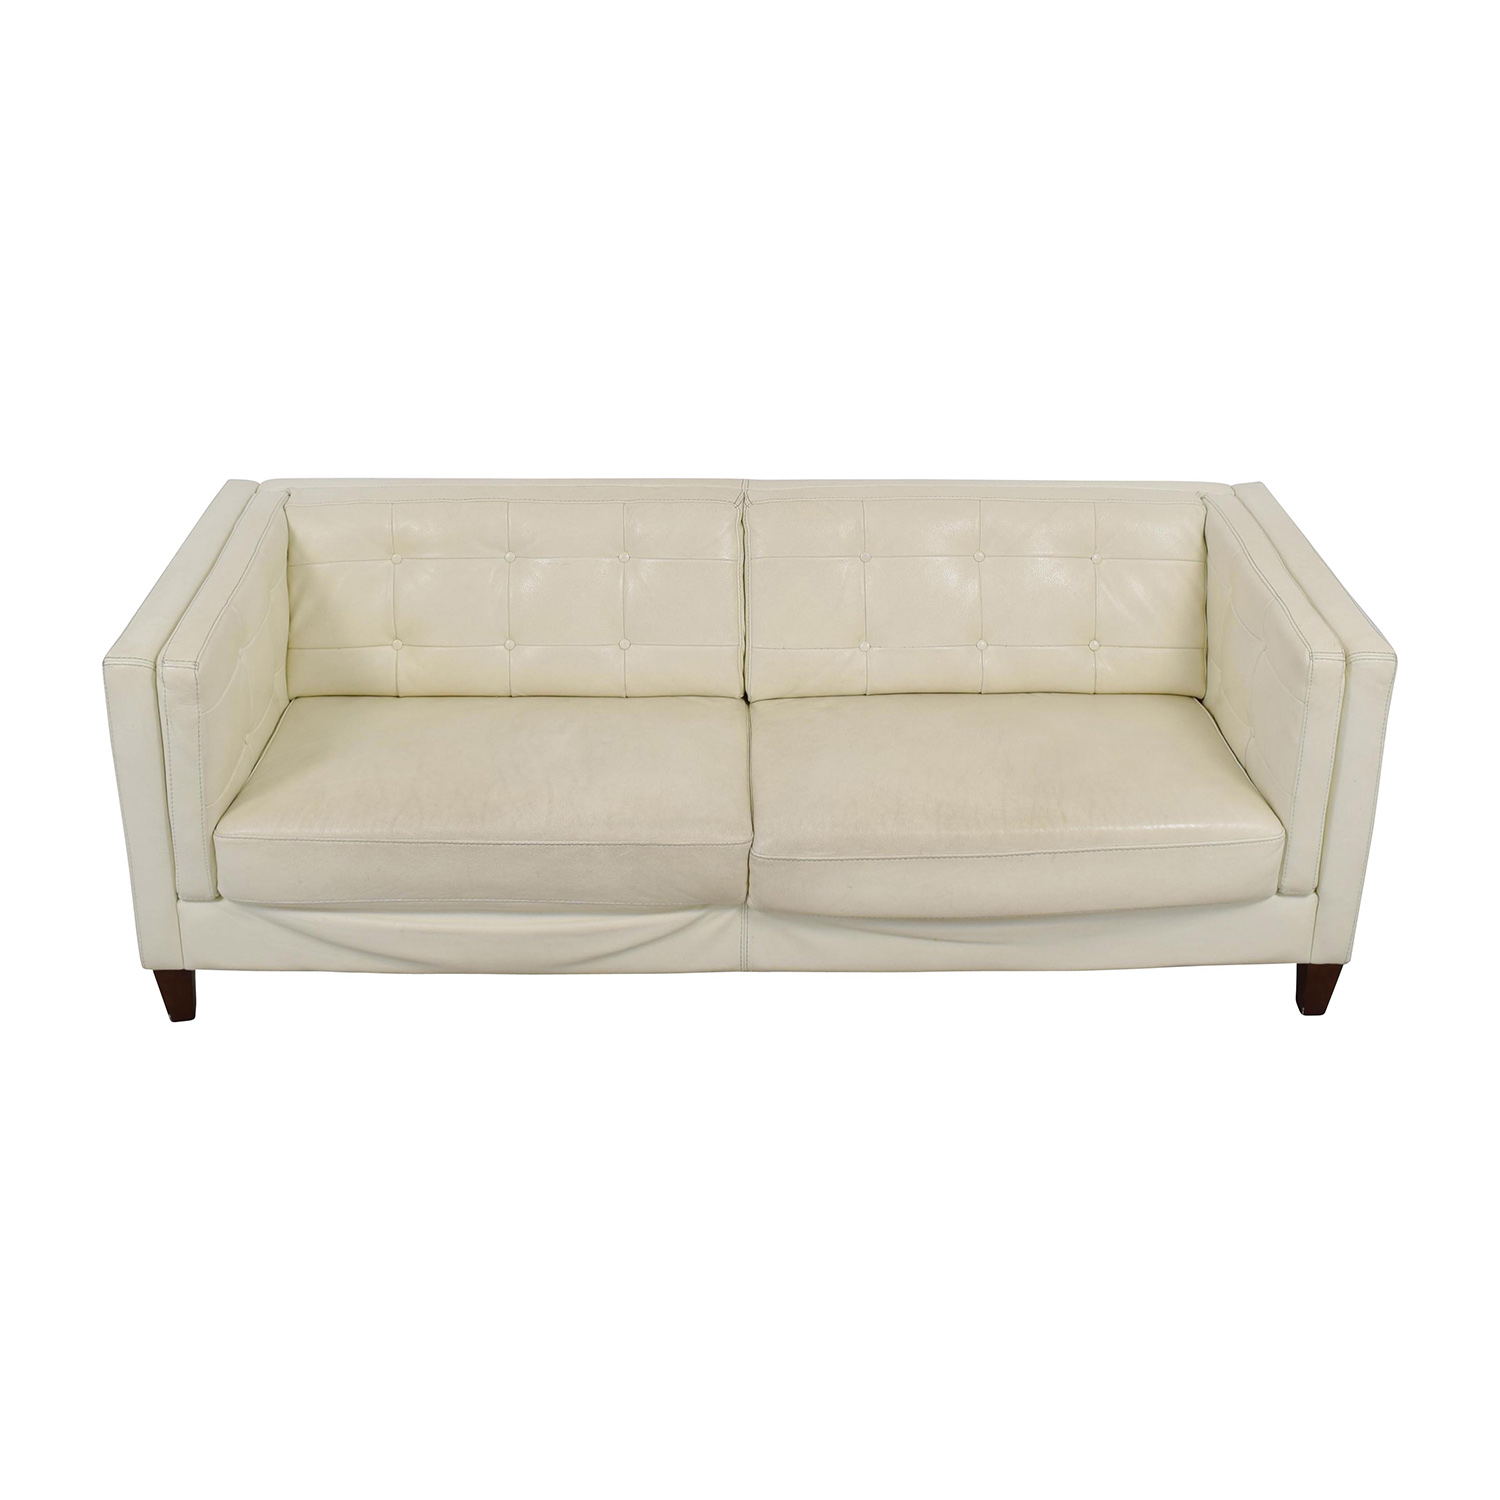 tufted sofas on sale slouch couch sofa bed used for